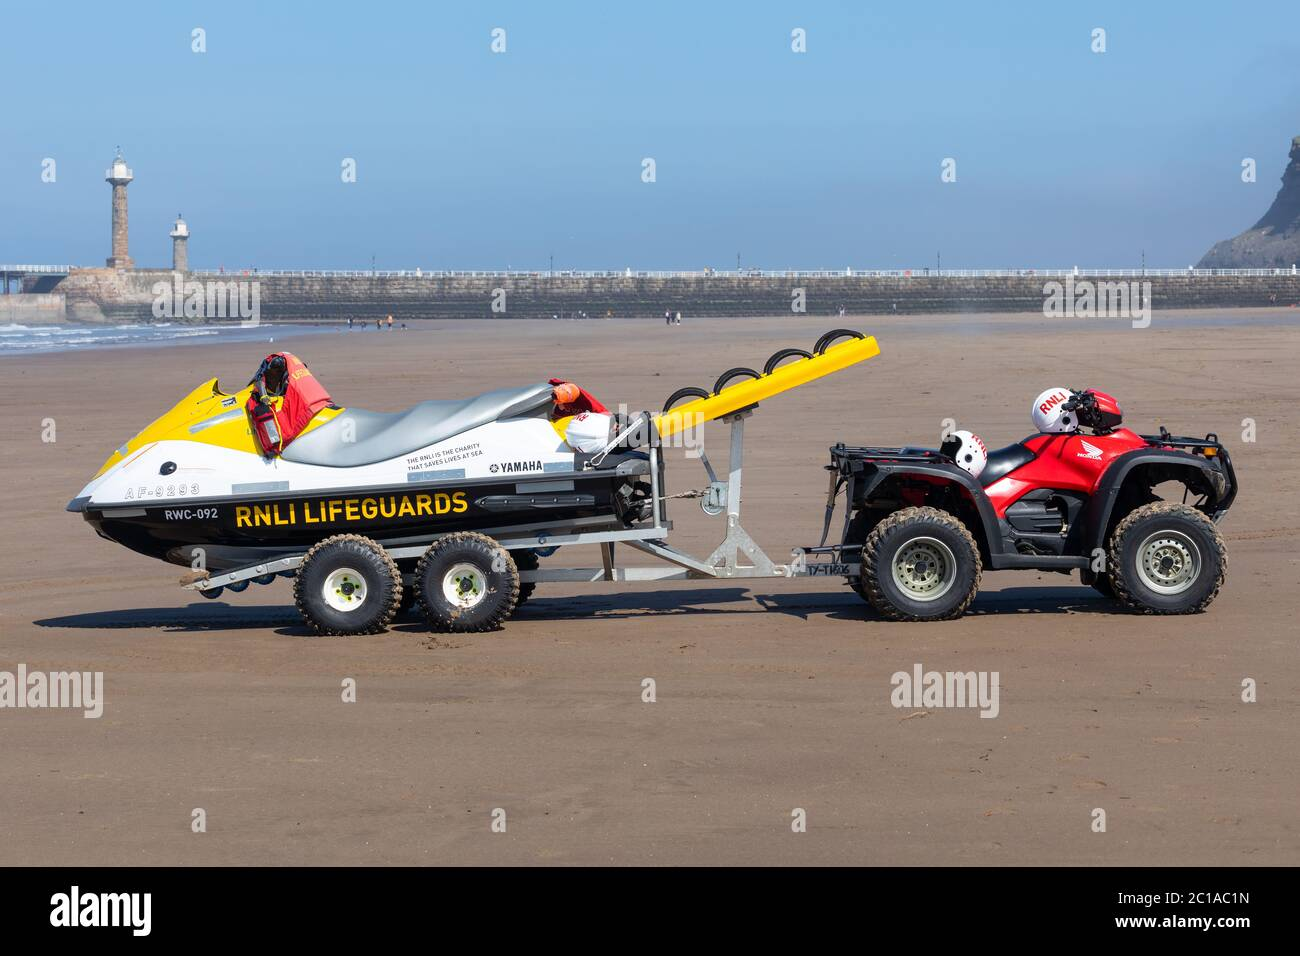 The RNLI patrolling the beach at Whitby, England. Stock Photo